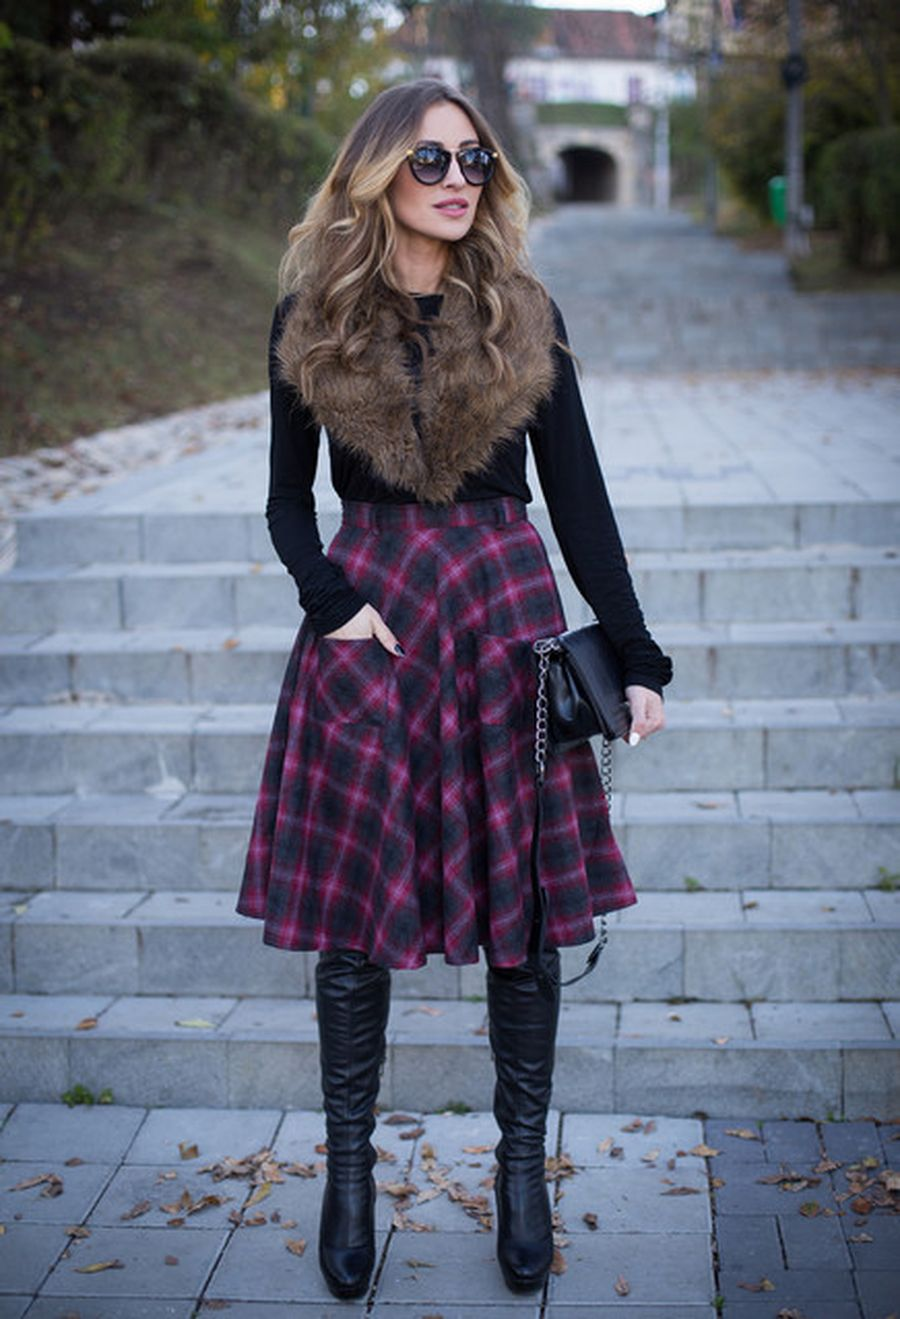 Inspiring skirt and boots combinations for fall and winter outfits 28